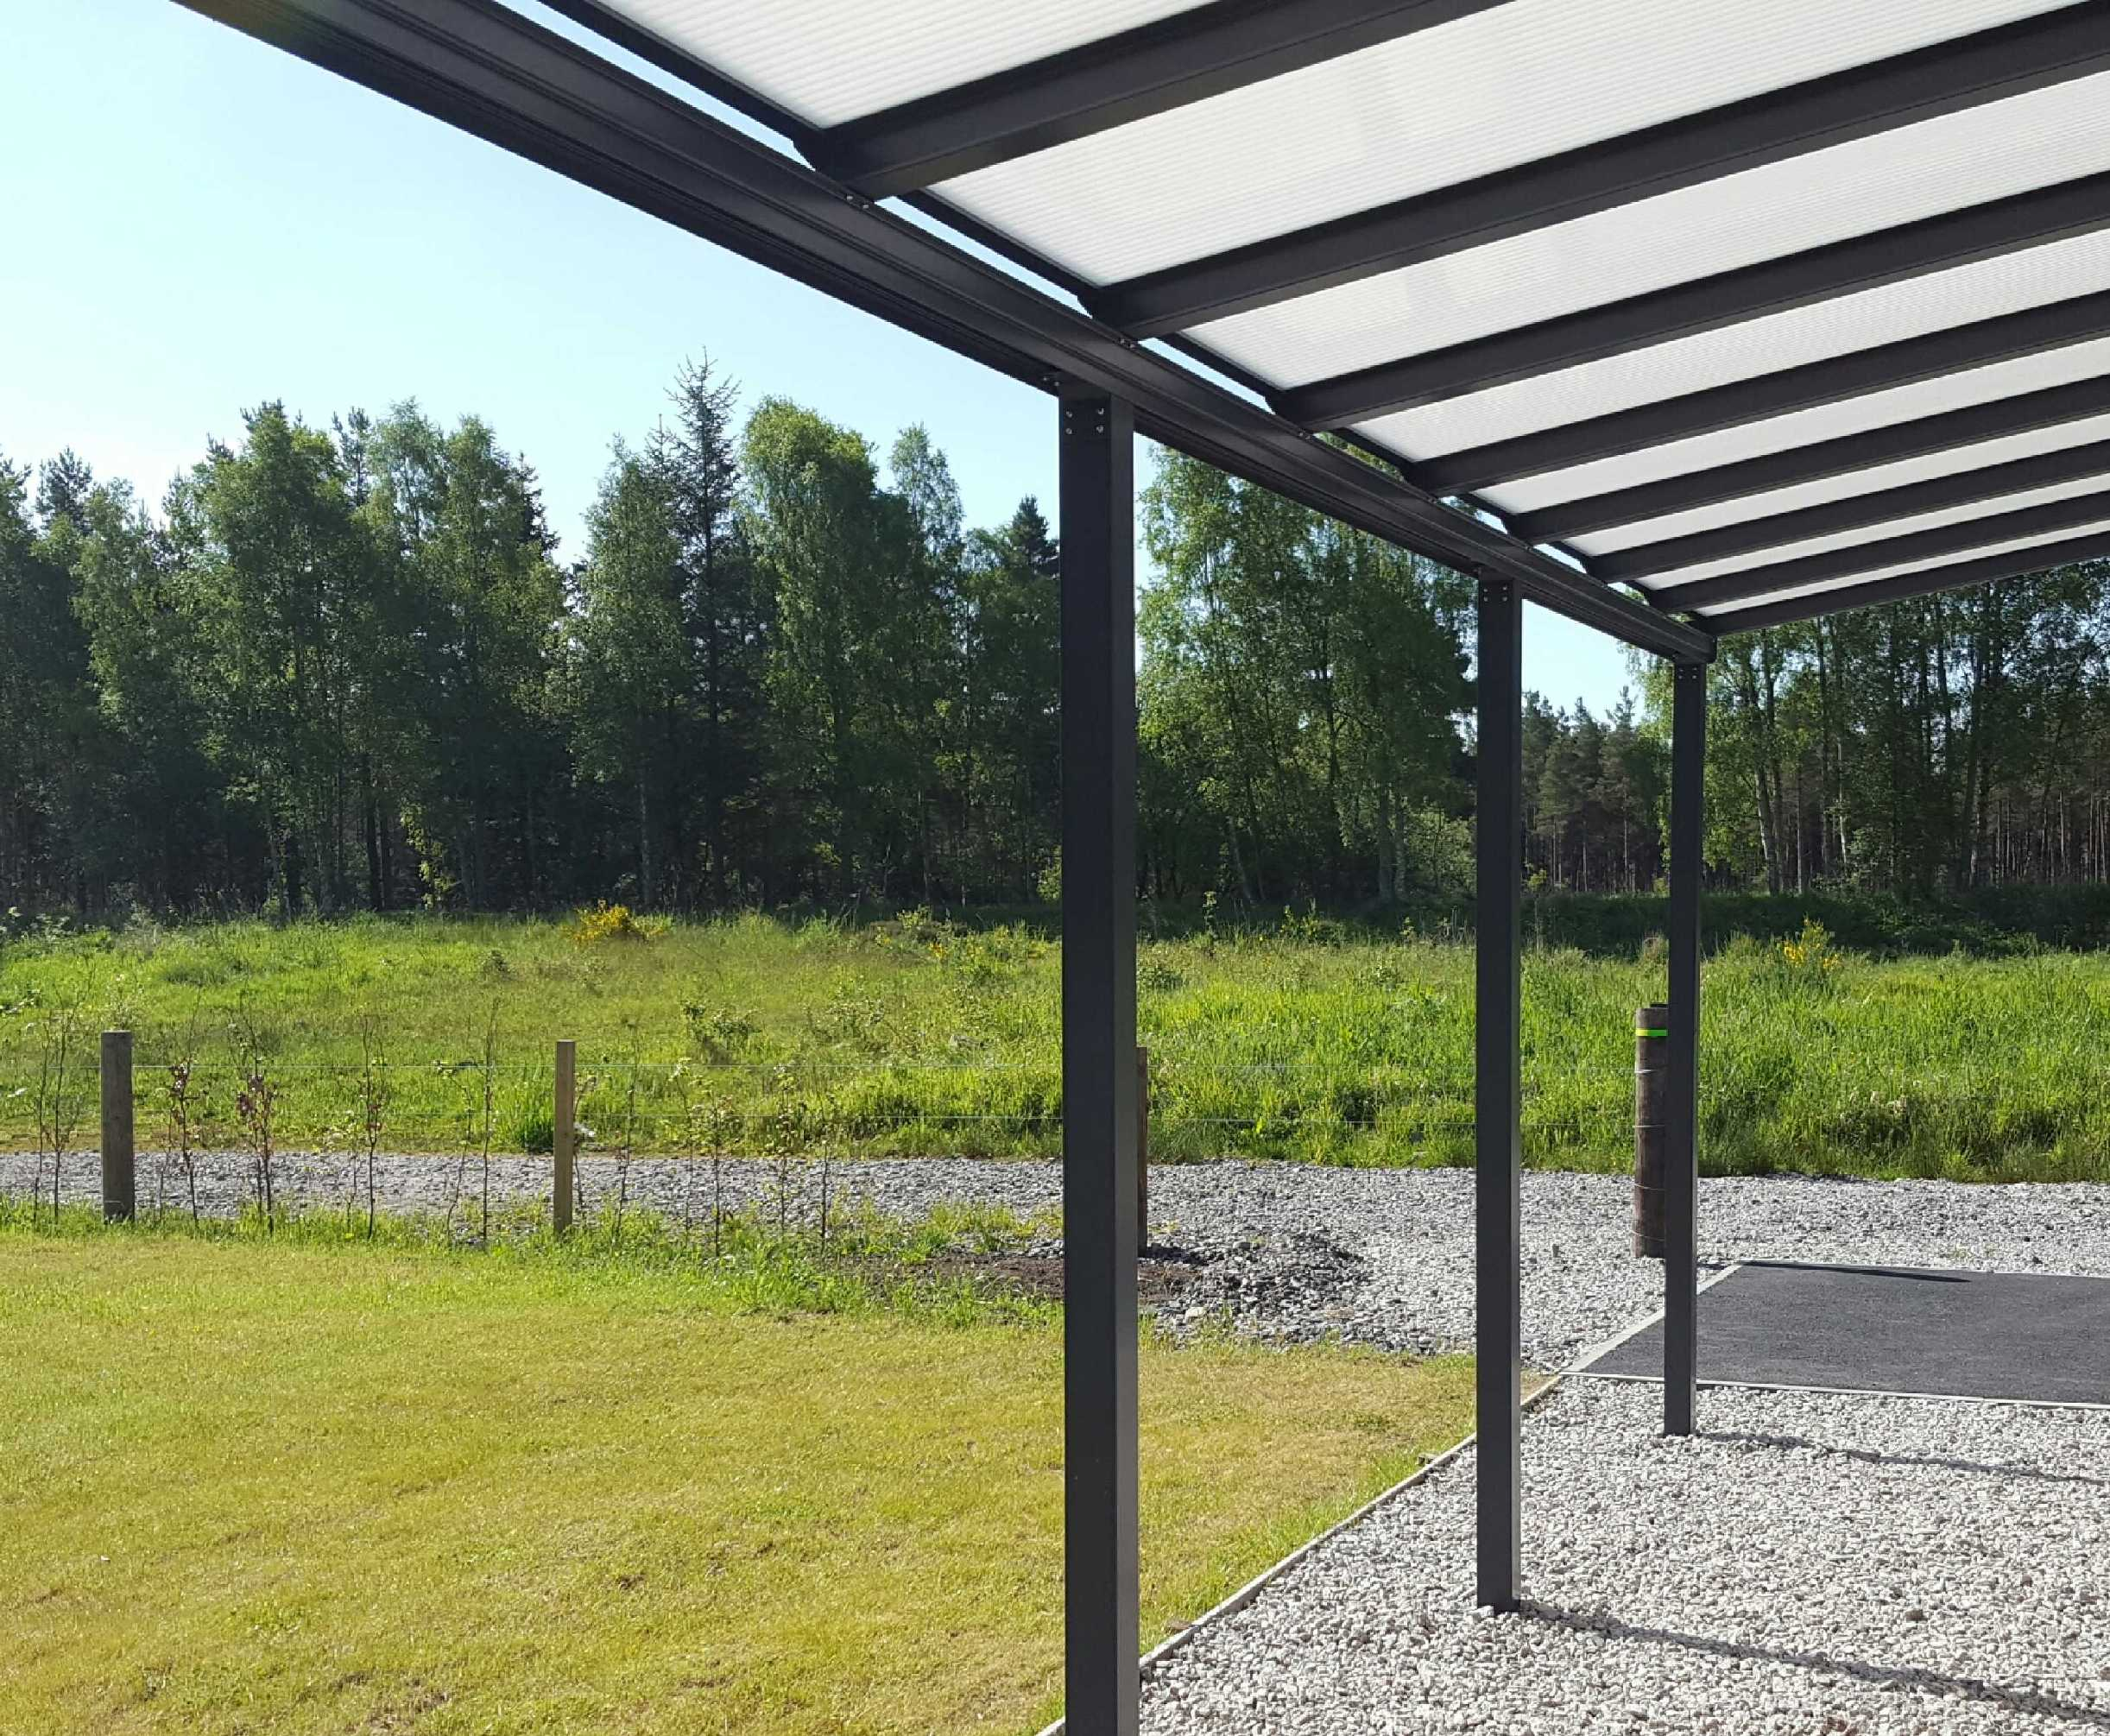 Omega Smart Lean-To Canopy, Anthracite Grey, 16mm Polycarbonate Glazing - 4.9m (W) x 4.0m (P), (3) Supporting Posts